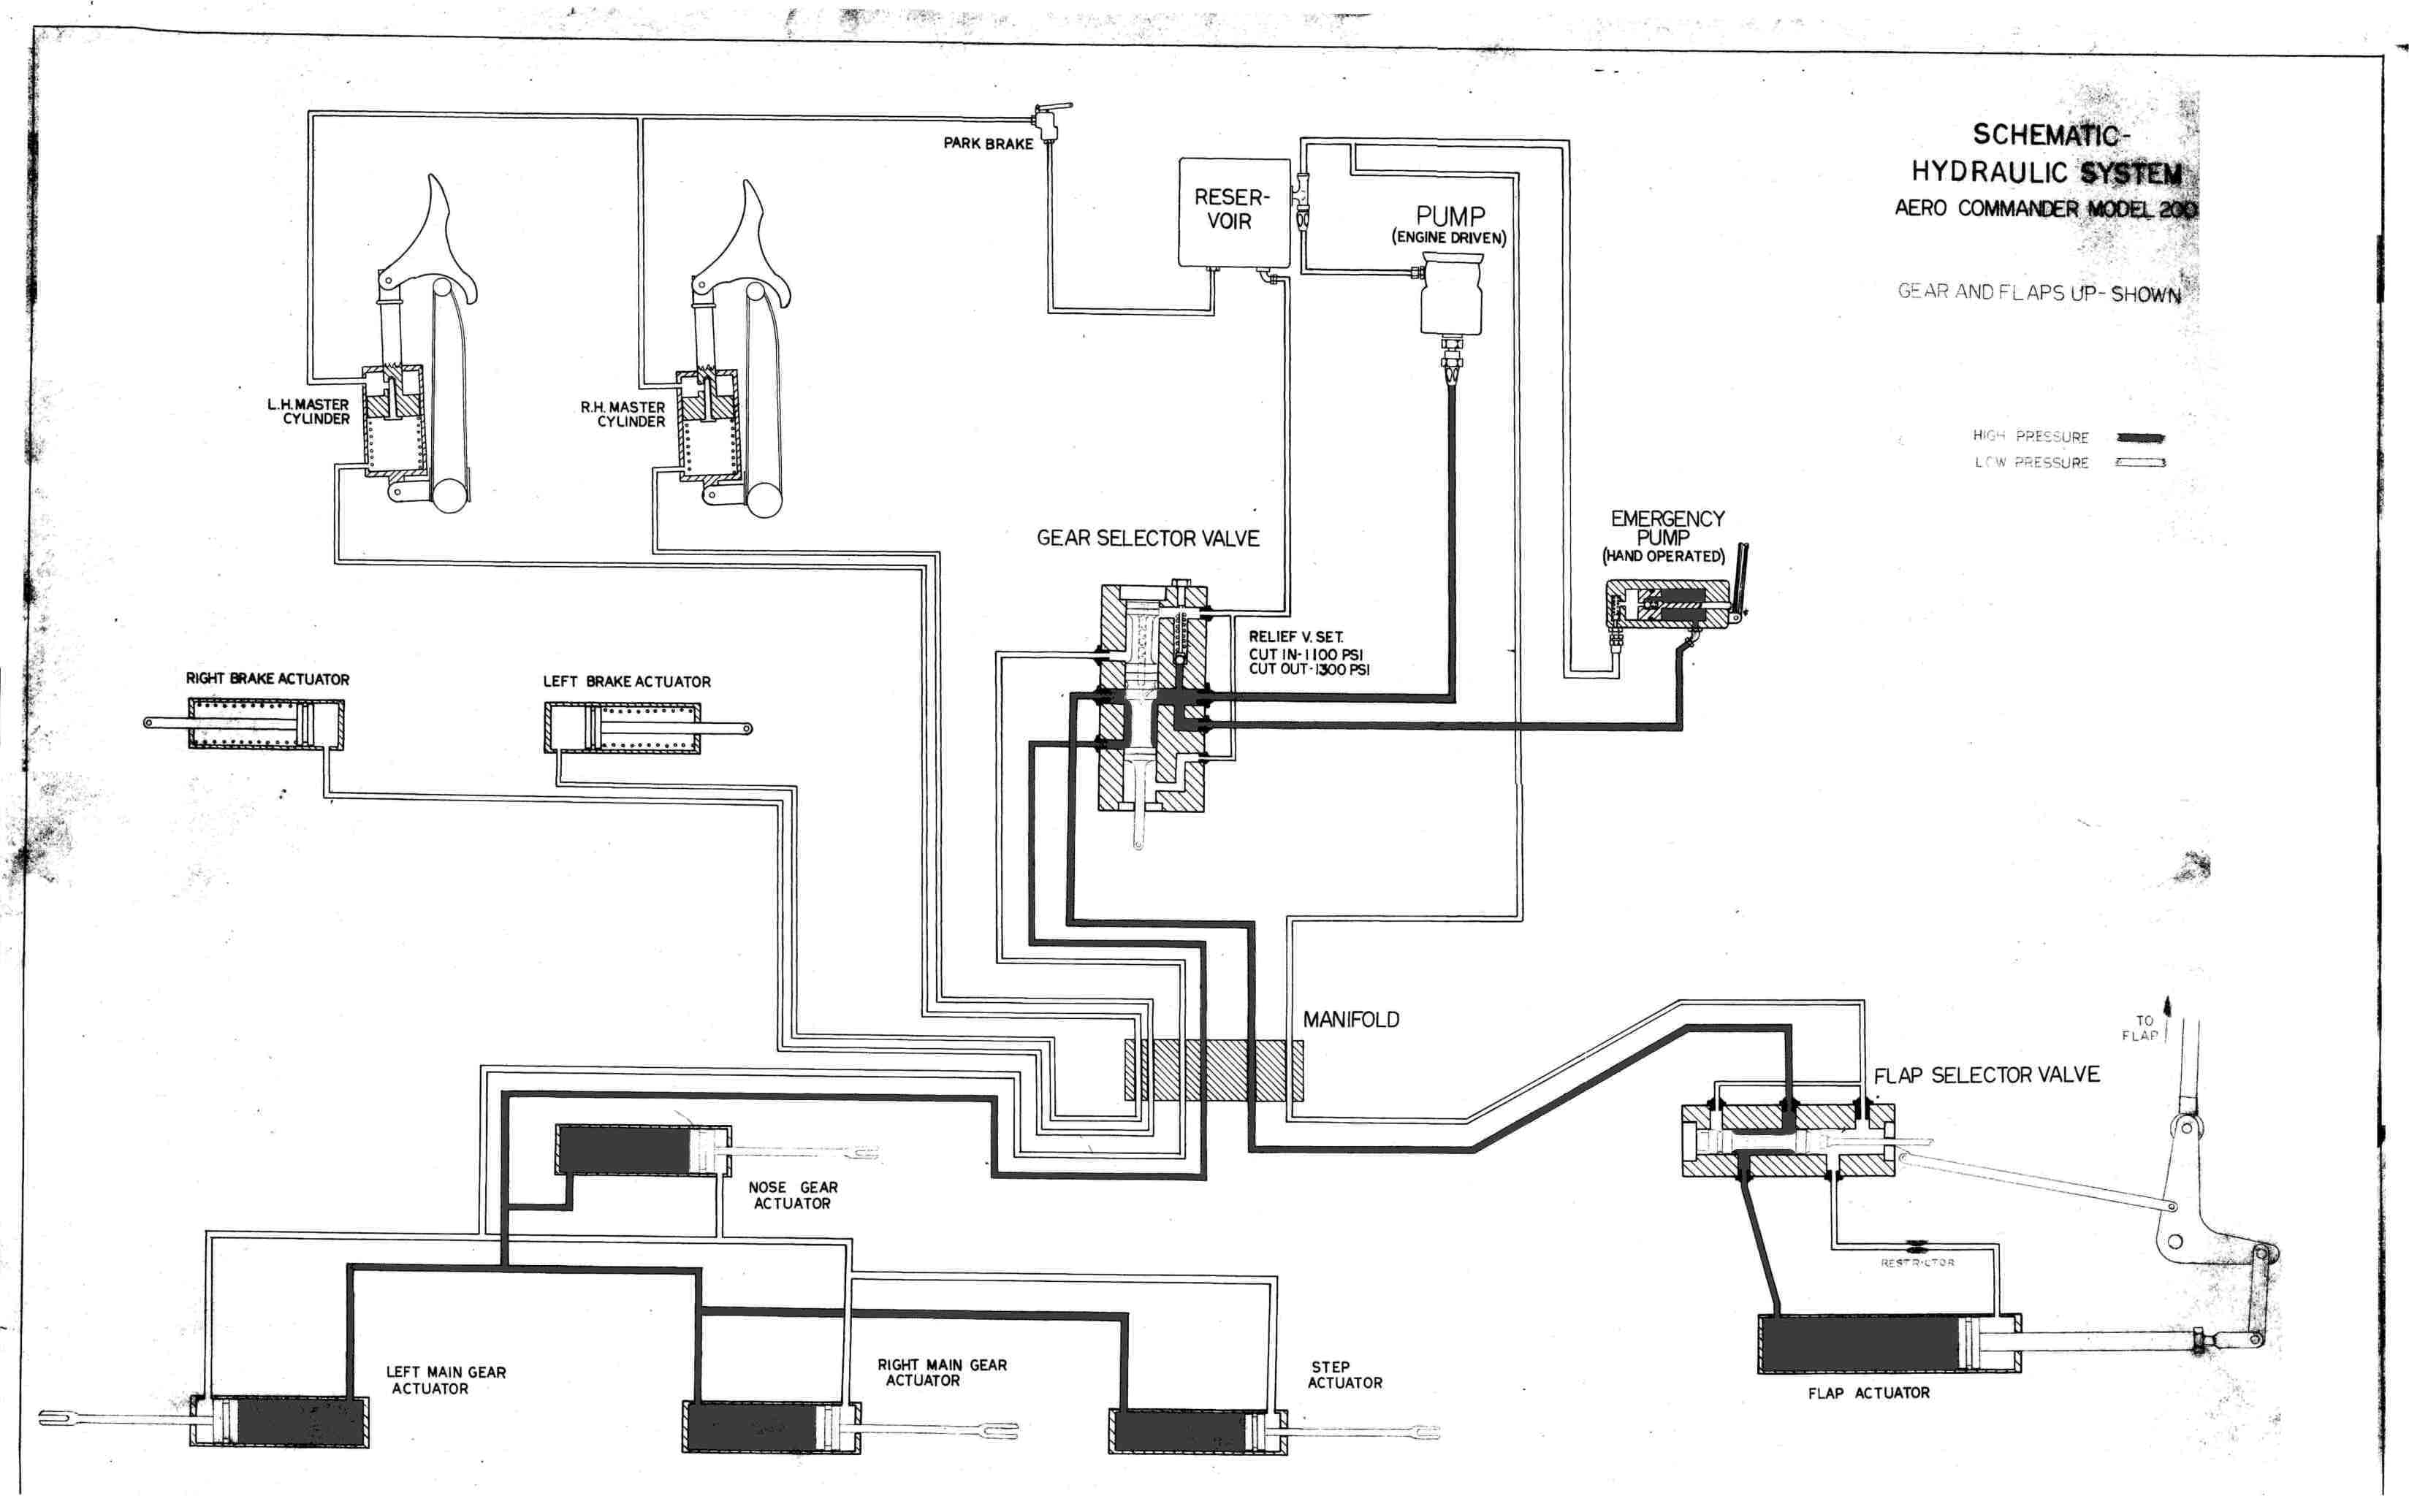 basic hydraulic system circuit diagram